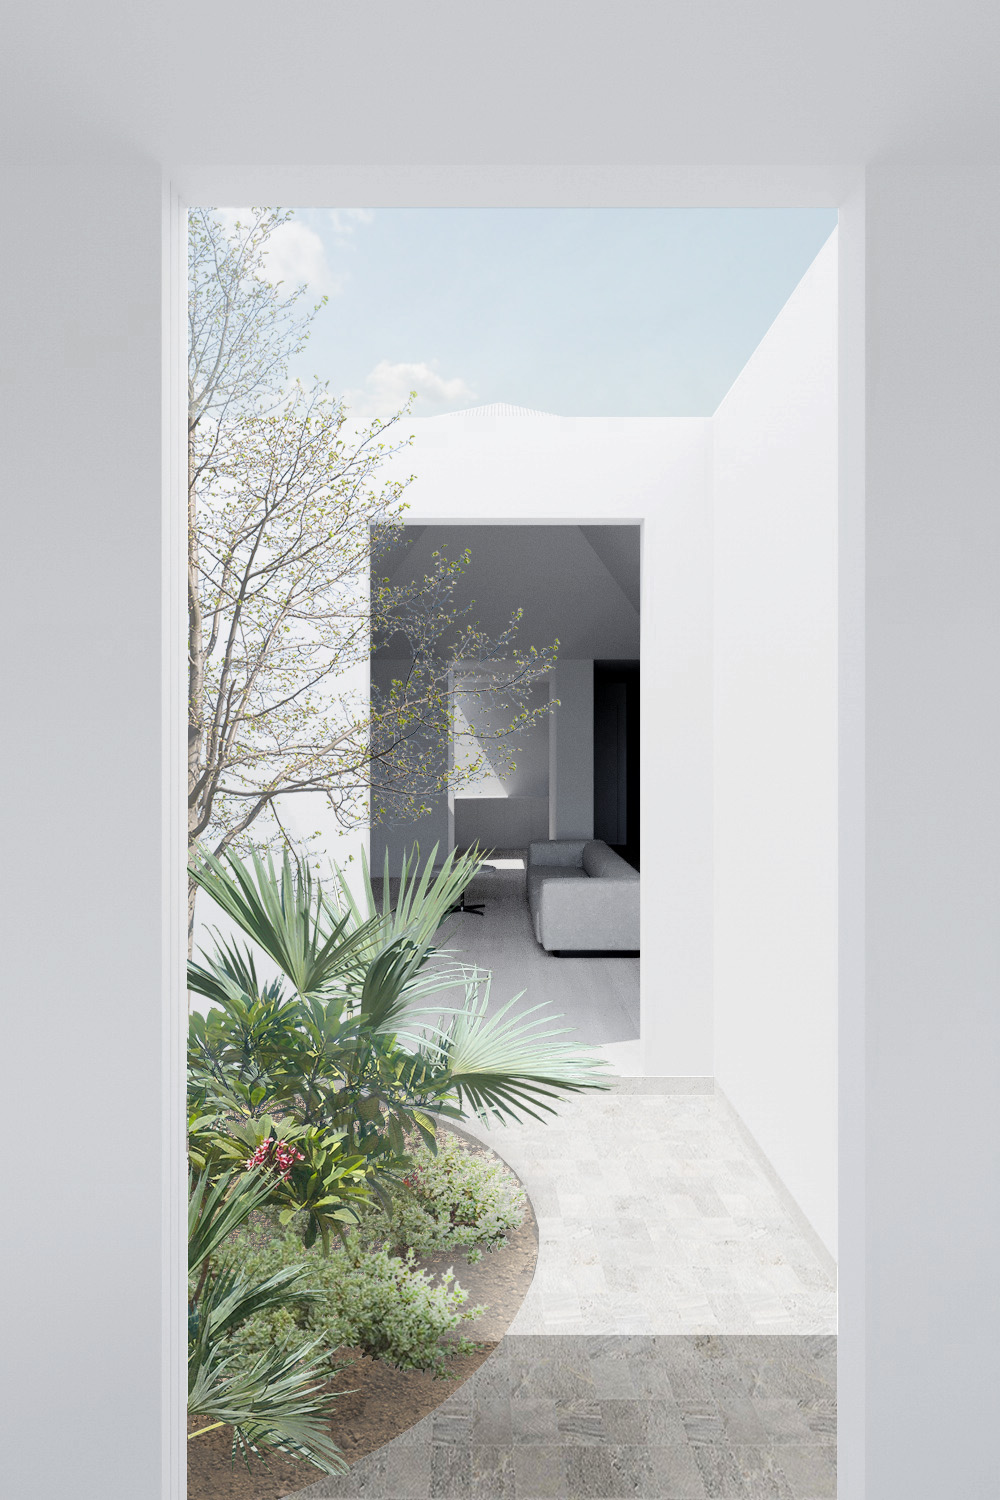 Spensley_SD_Render_Living_Courtyard.jpg